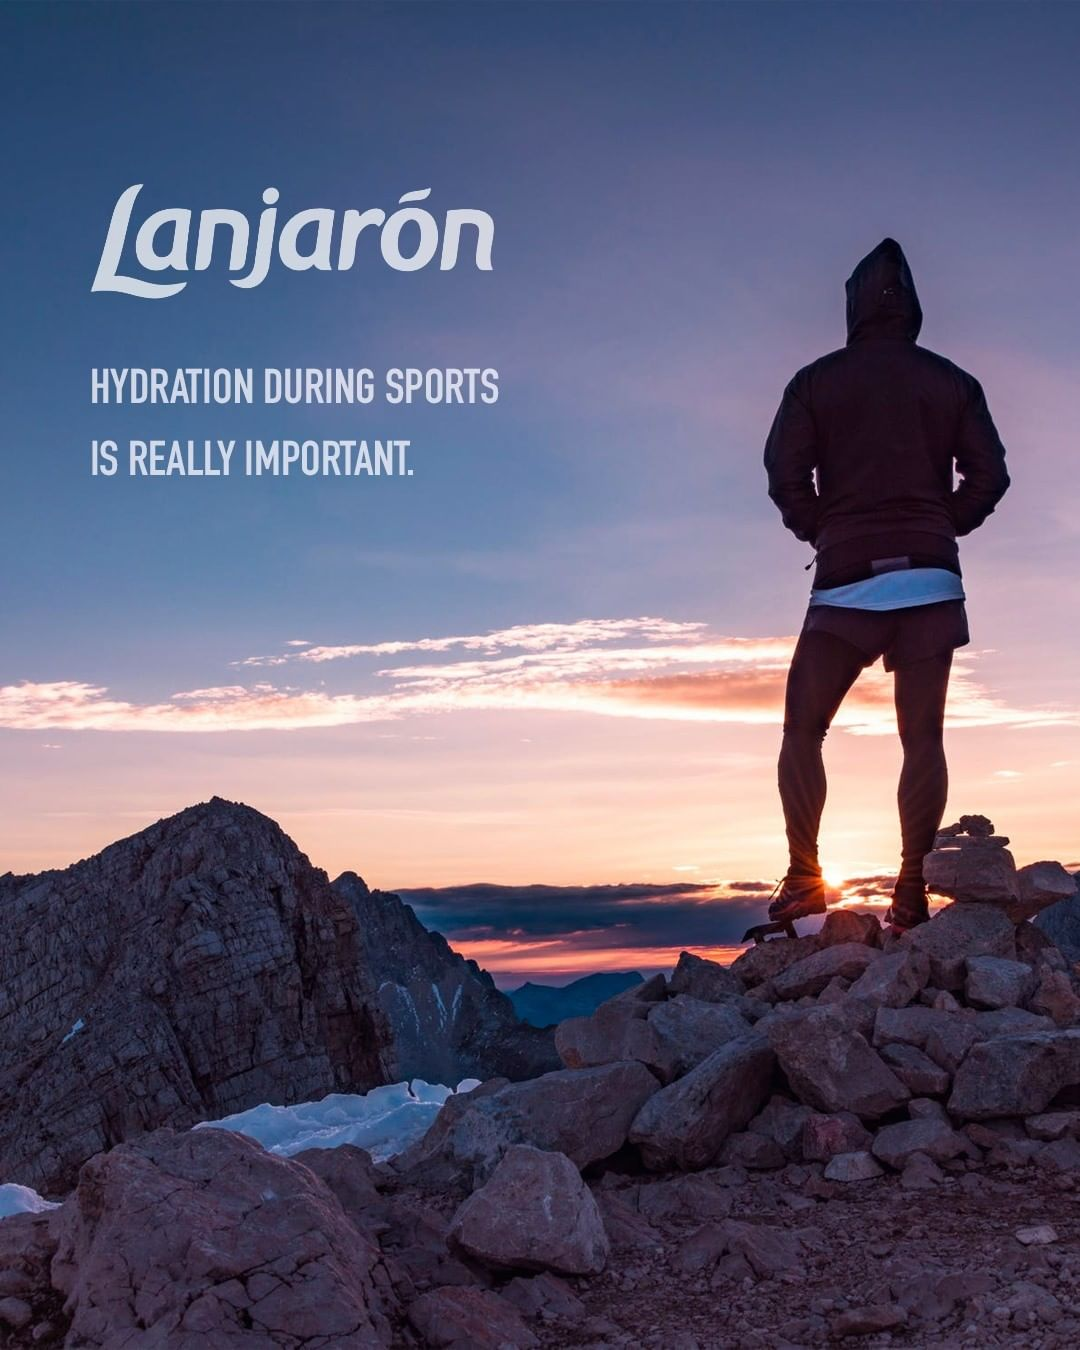 If you don't hydrate while exercising, your performance will decline and you will feel discomfort. The symptoms of dehydration can be felt when the amount of water you lose is equal to one percent of your body weight.